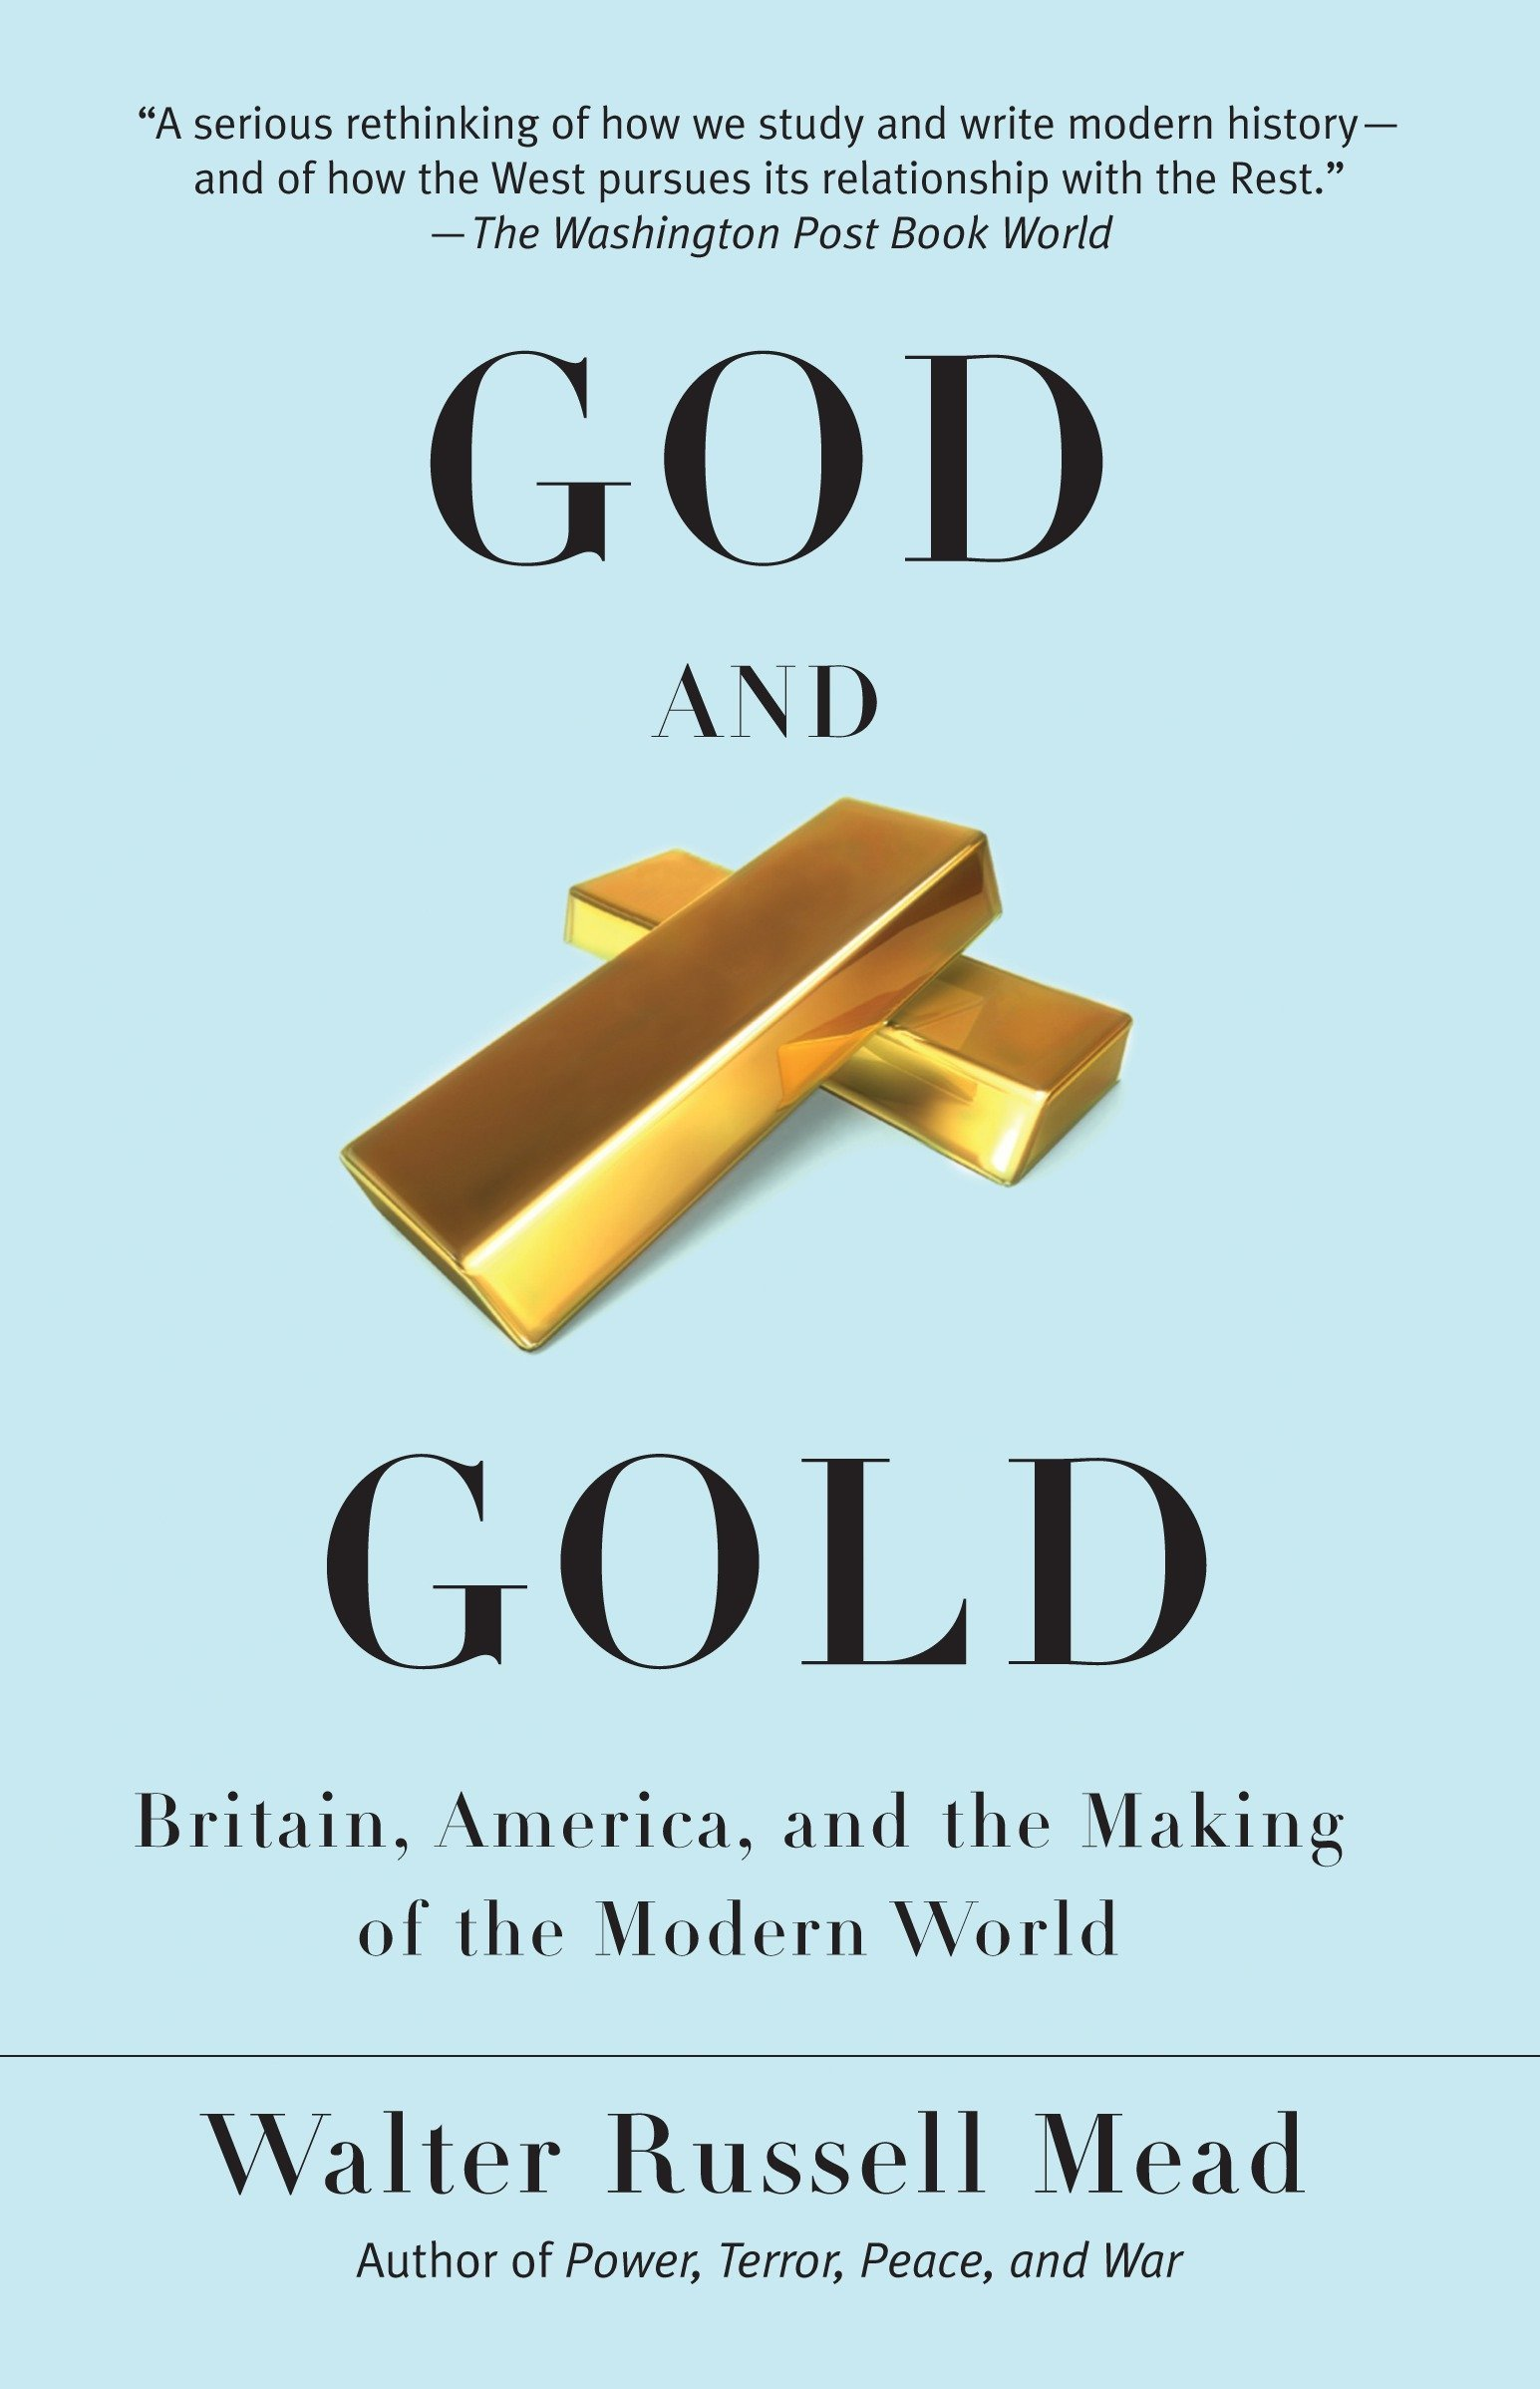 God and Gold: Britain, America, and the Making of the Modern World Vintage: Amazon.es: Walter Russell Mead: Libros en idiomas extranjeros